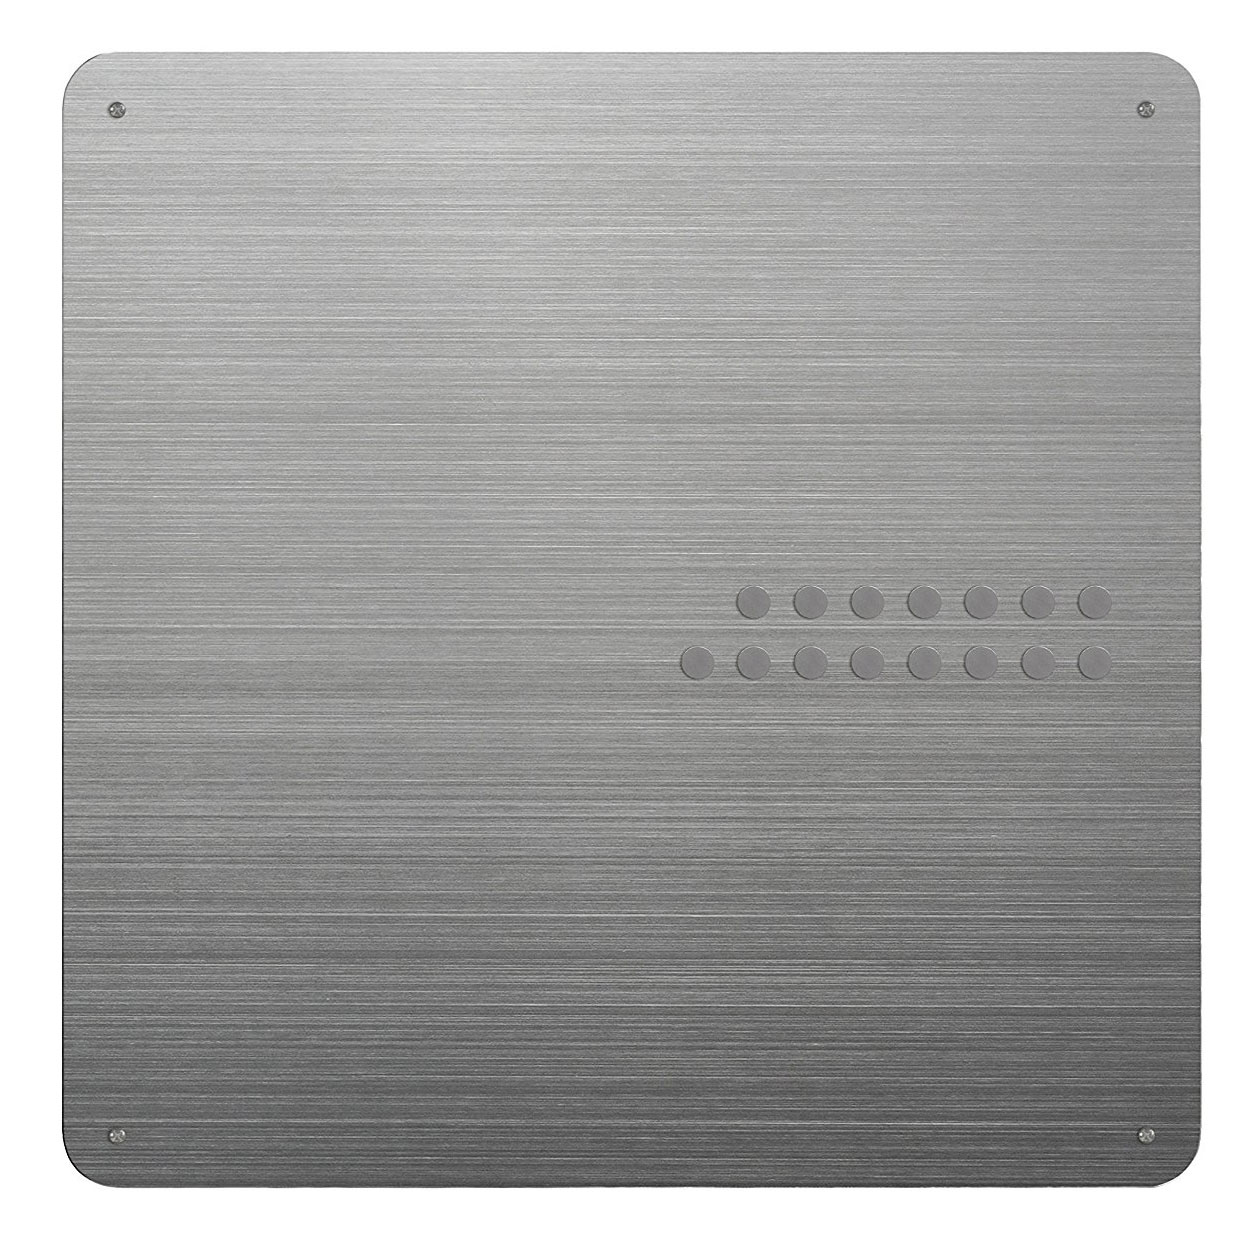 Silver Stainless Steel Magnetic Bulletin Board In Memo And